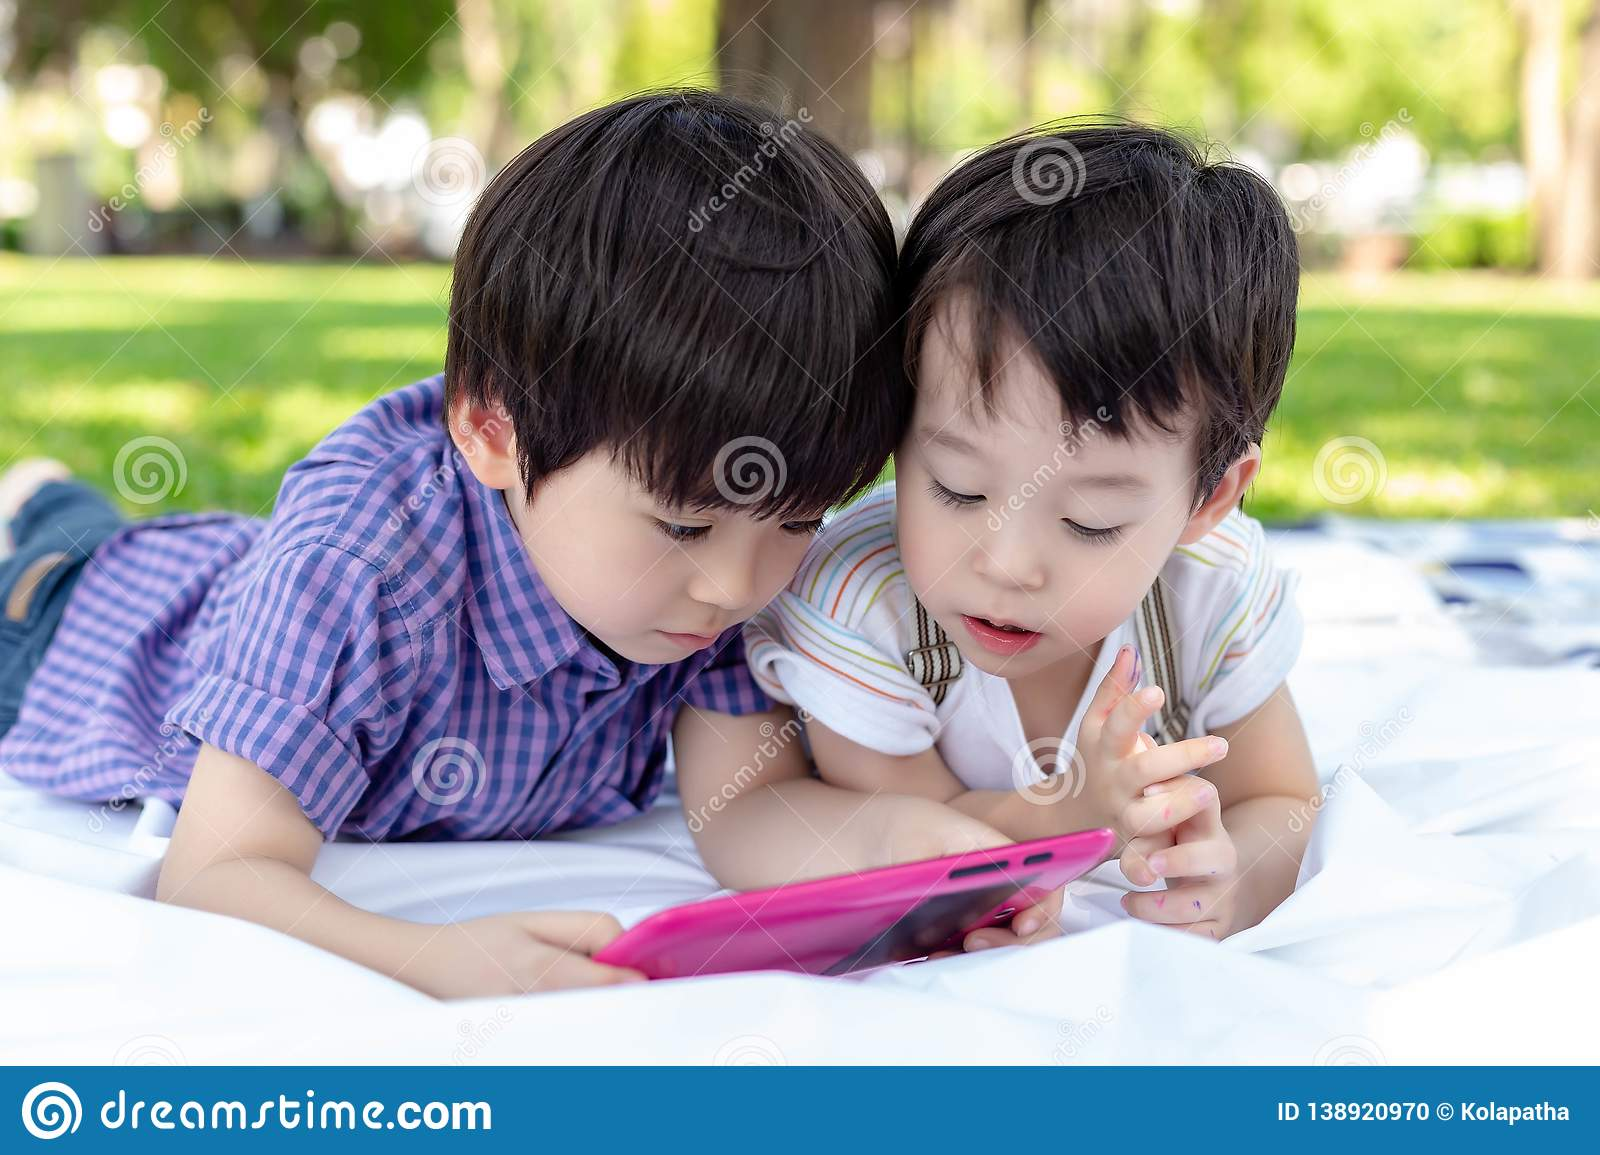 Big brother and younger brother are watching cartoons on tablet at park. Cute young boys are brotherhood. Lovely children always